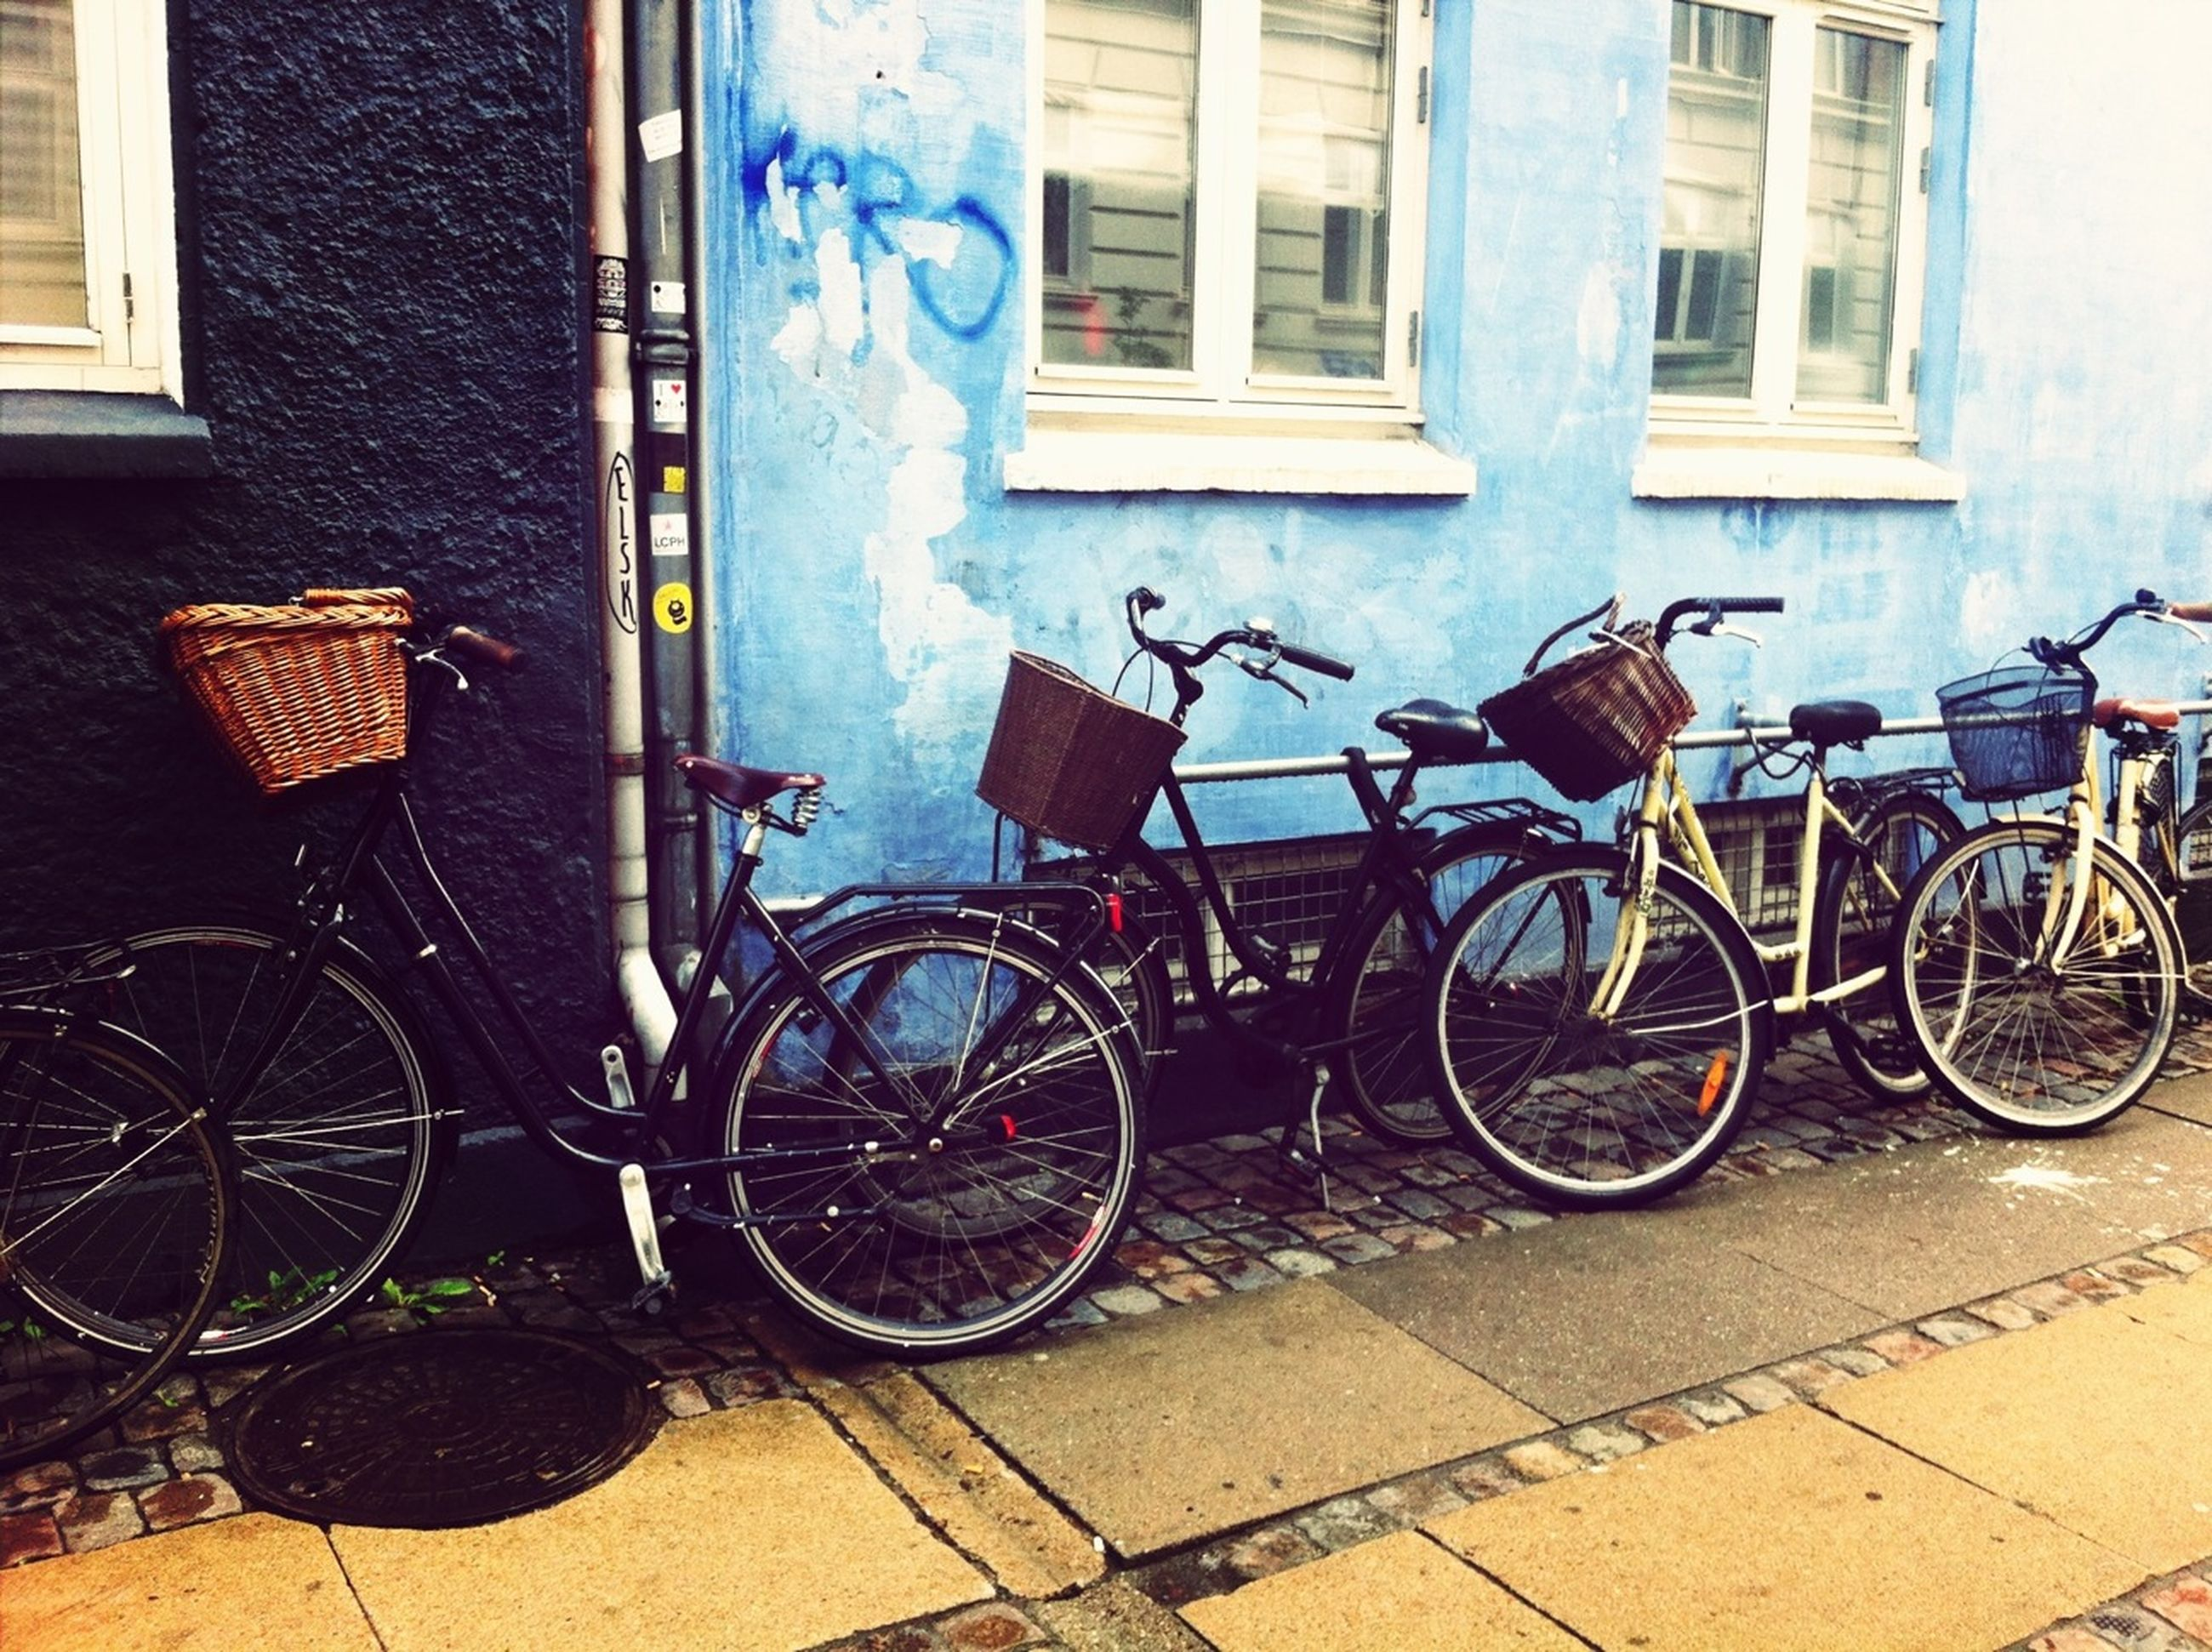 bicycle, building exterior, architecture, built structure, stationary, parking, wall - building feature, transportation, parked, sidewalk, land vehicle, window, mode of transport, house, wall, cobblestone, door, graffiti, building, day